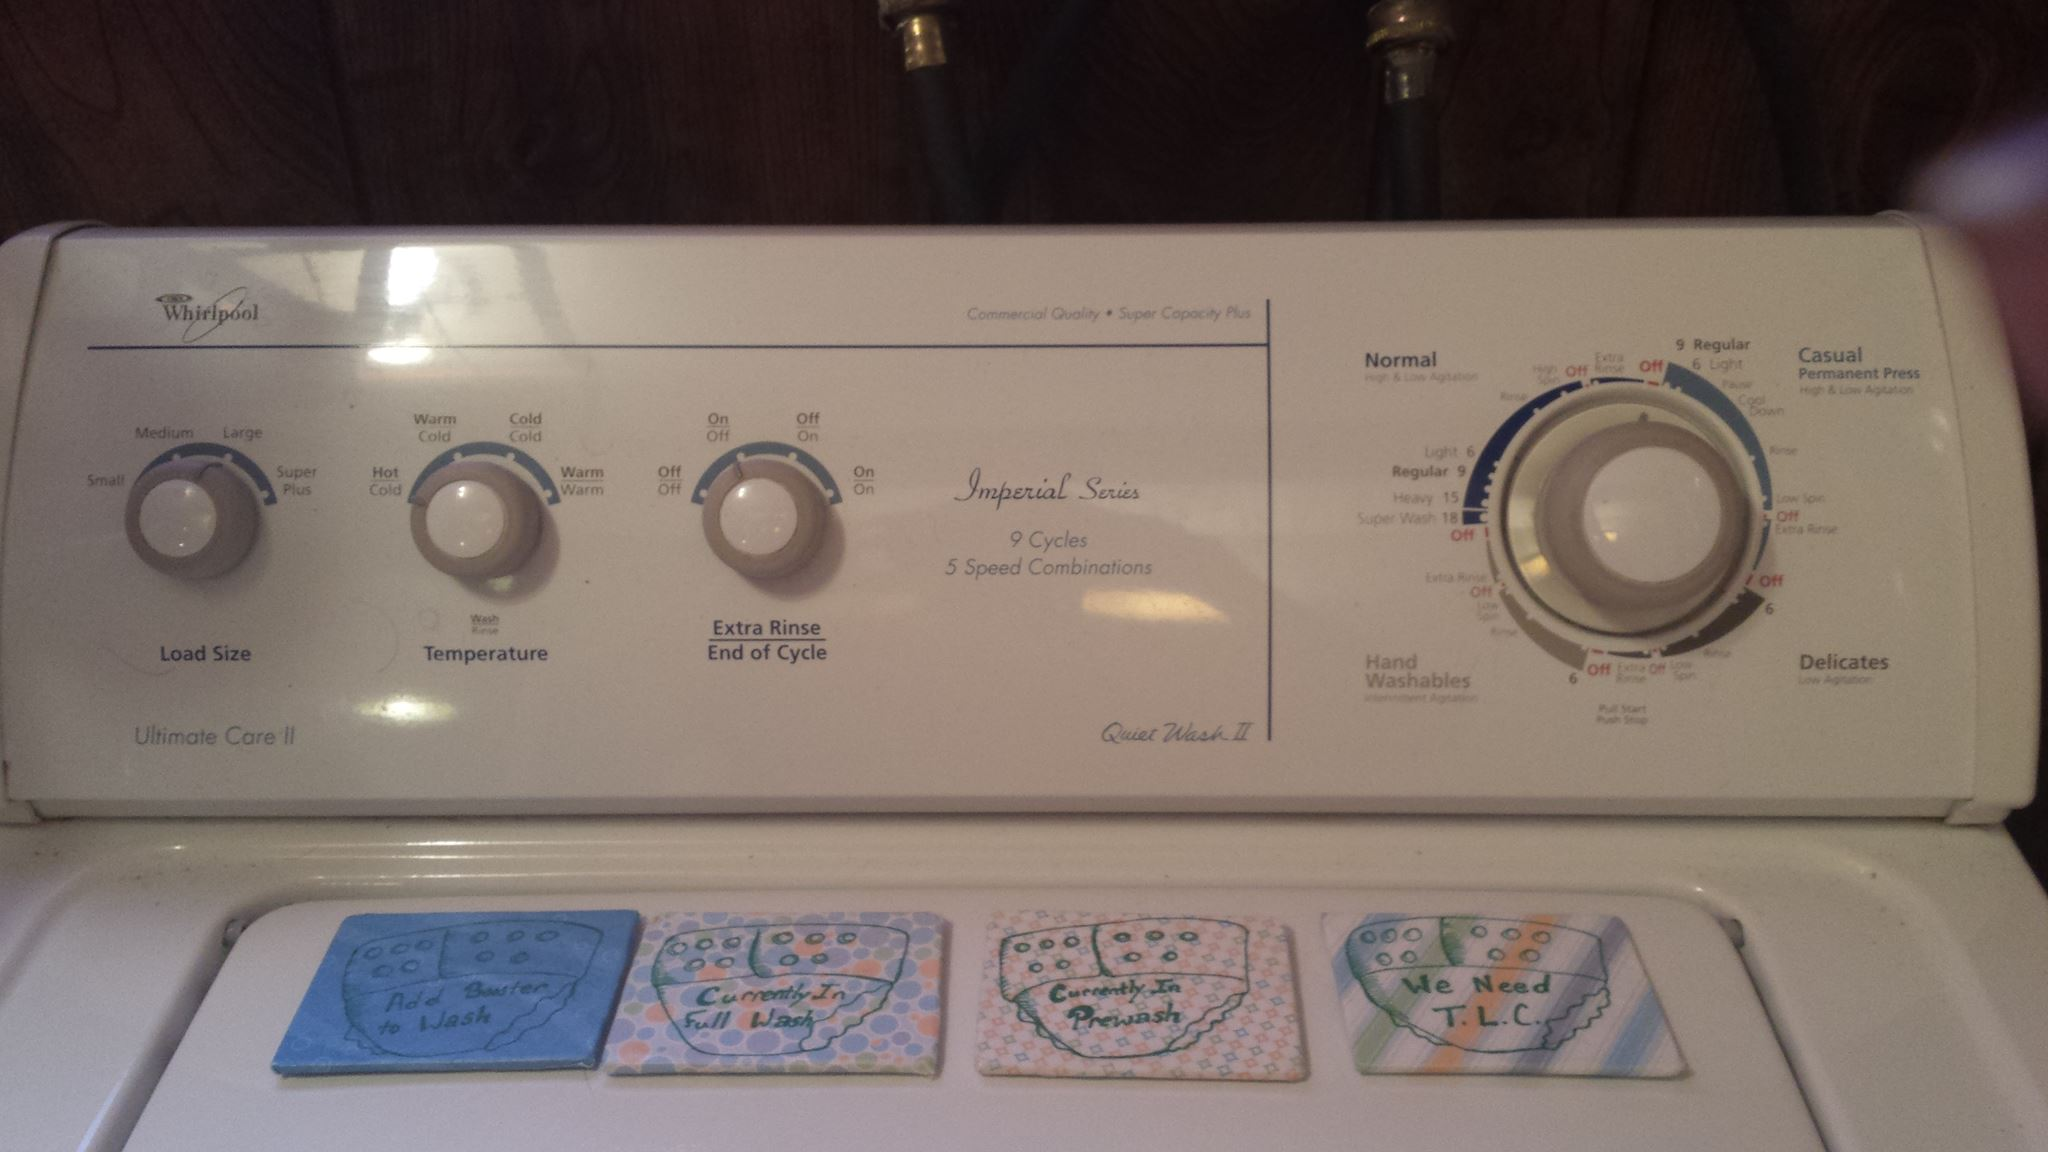 whirlpool gold ultimate care ii dryer wiring diagram horn relay cabrio washer electrical schematic